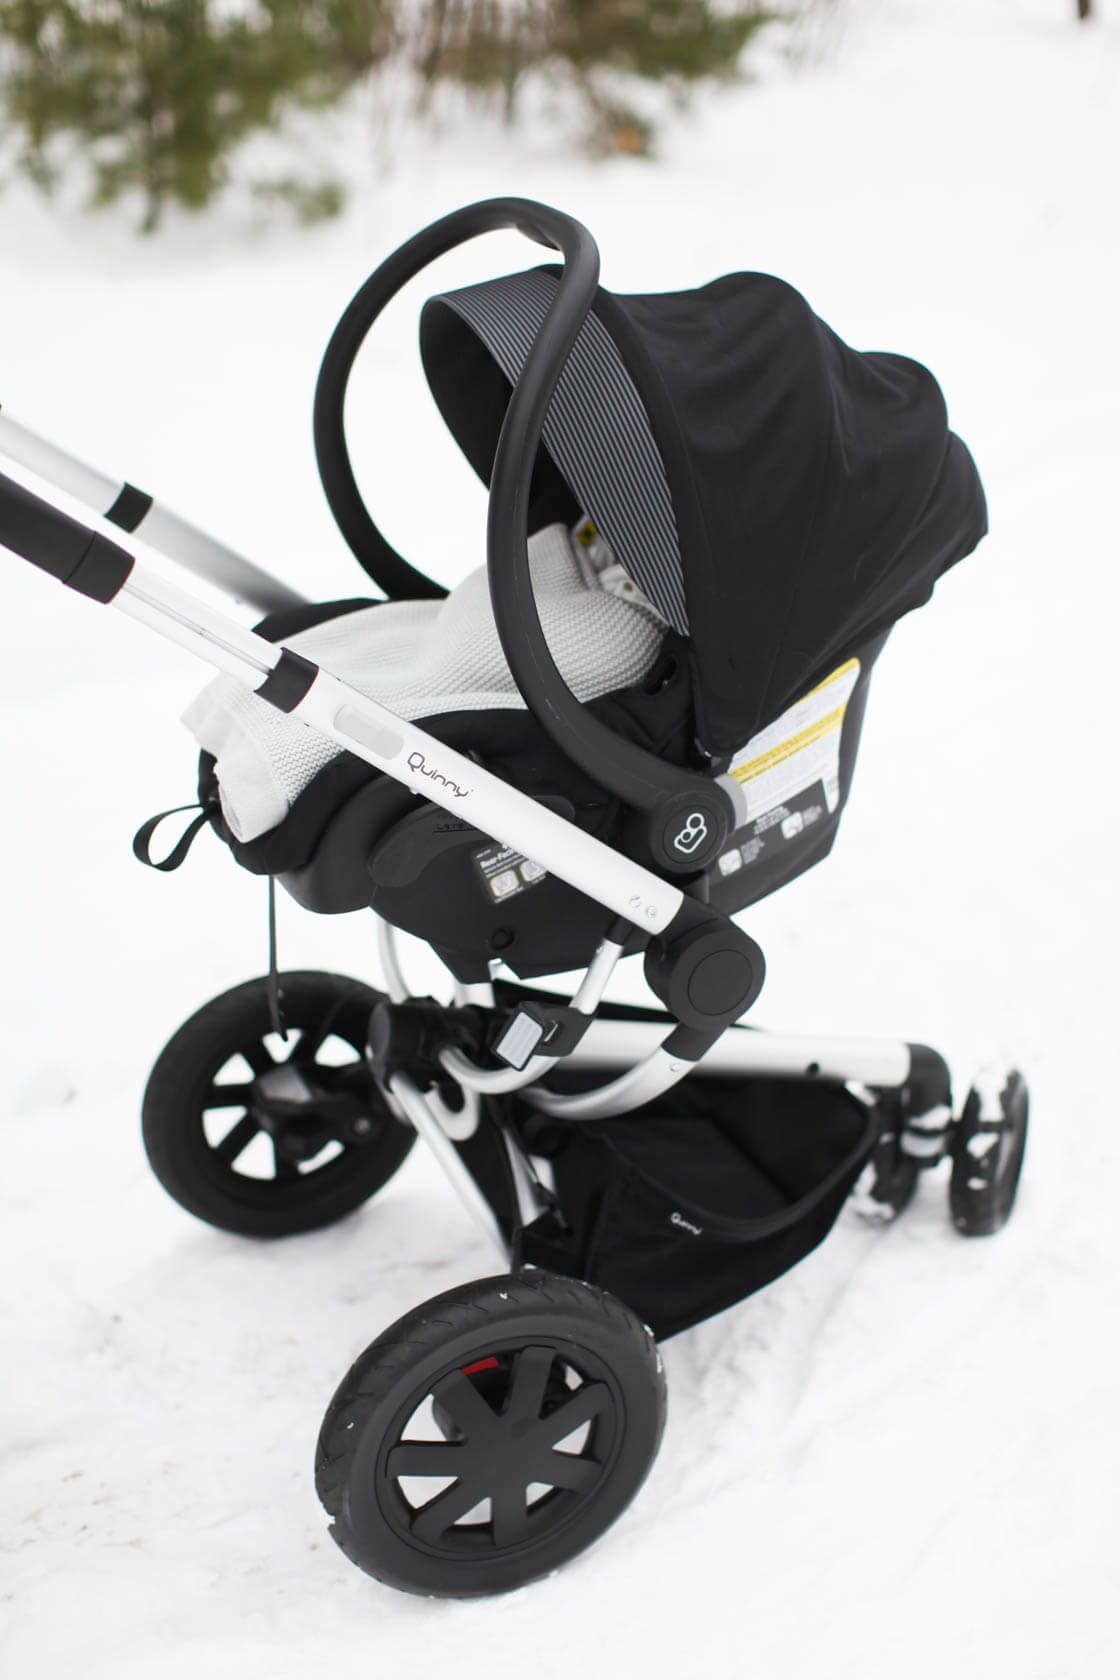 Our Car Seat and Stroller Combo Samantha Elizabeth